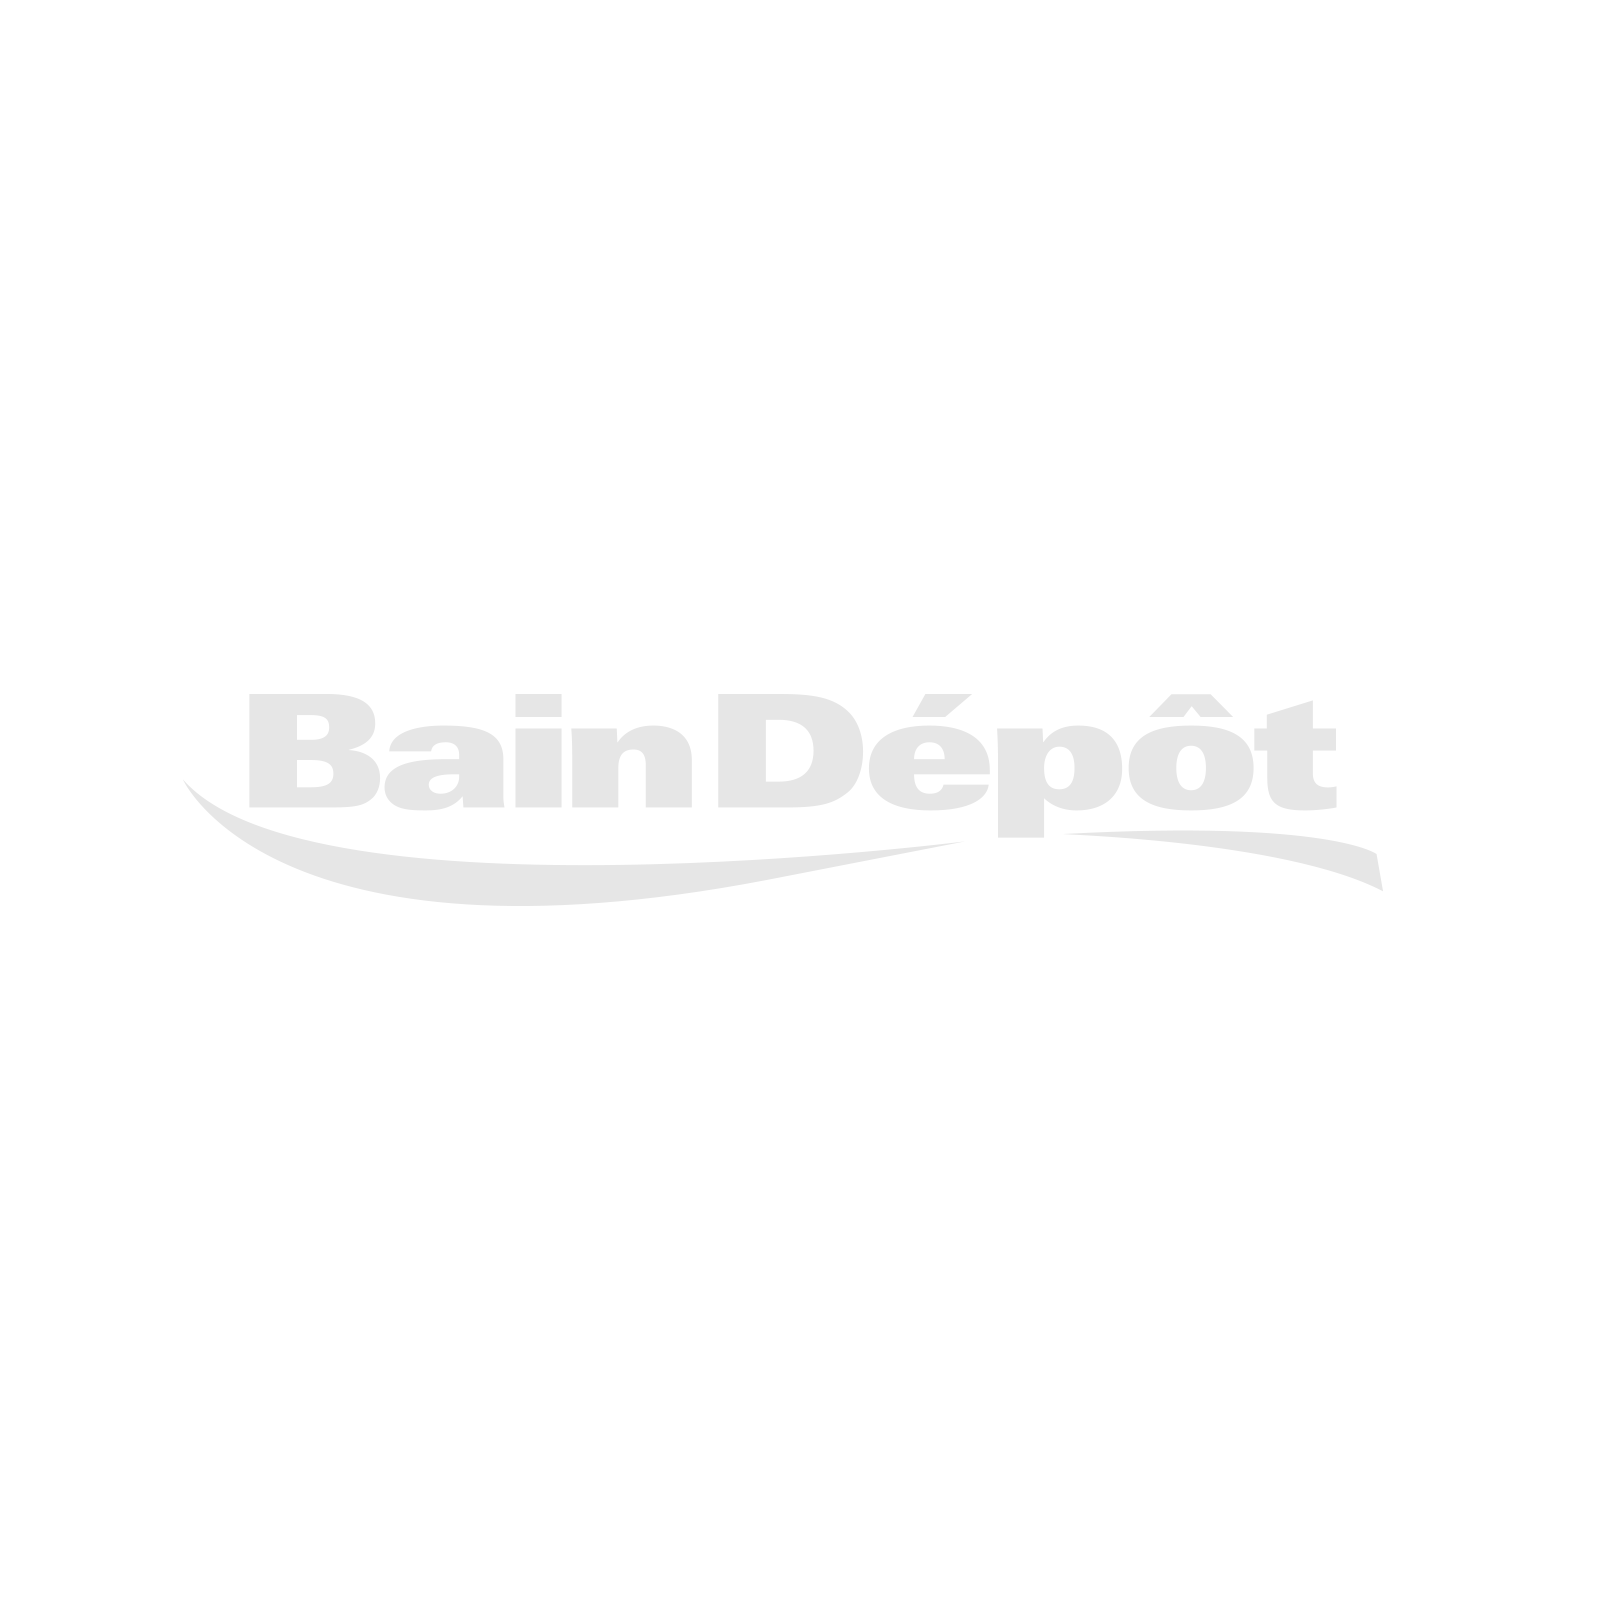 "DUO CRAIG 60"" x 32"" alcove apron bathtub with chrome tub-shower faucet and rain showerhead (right side drain)"